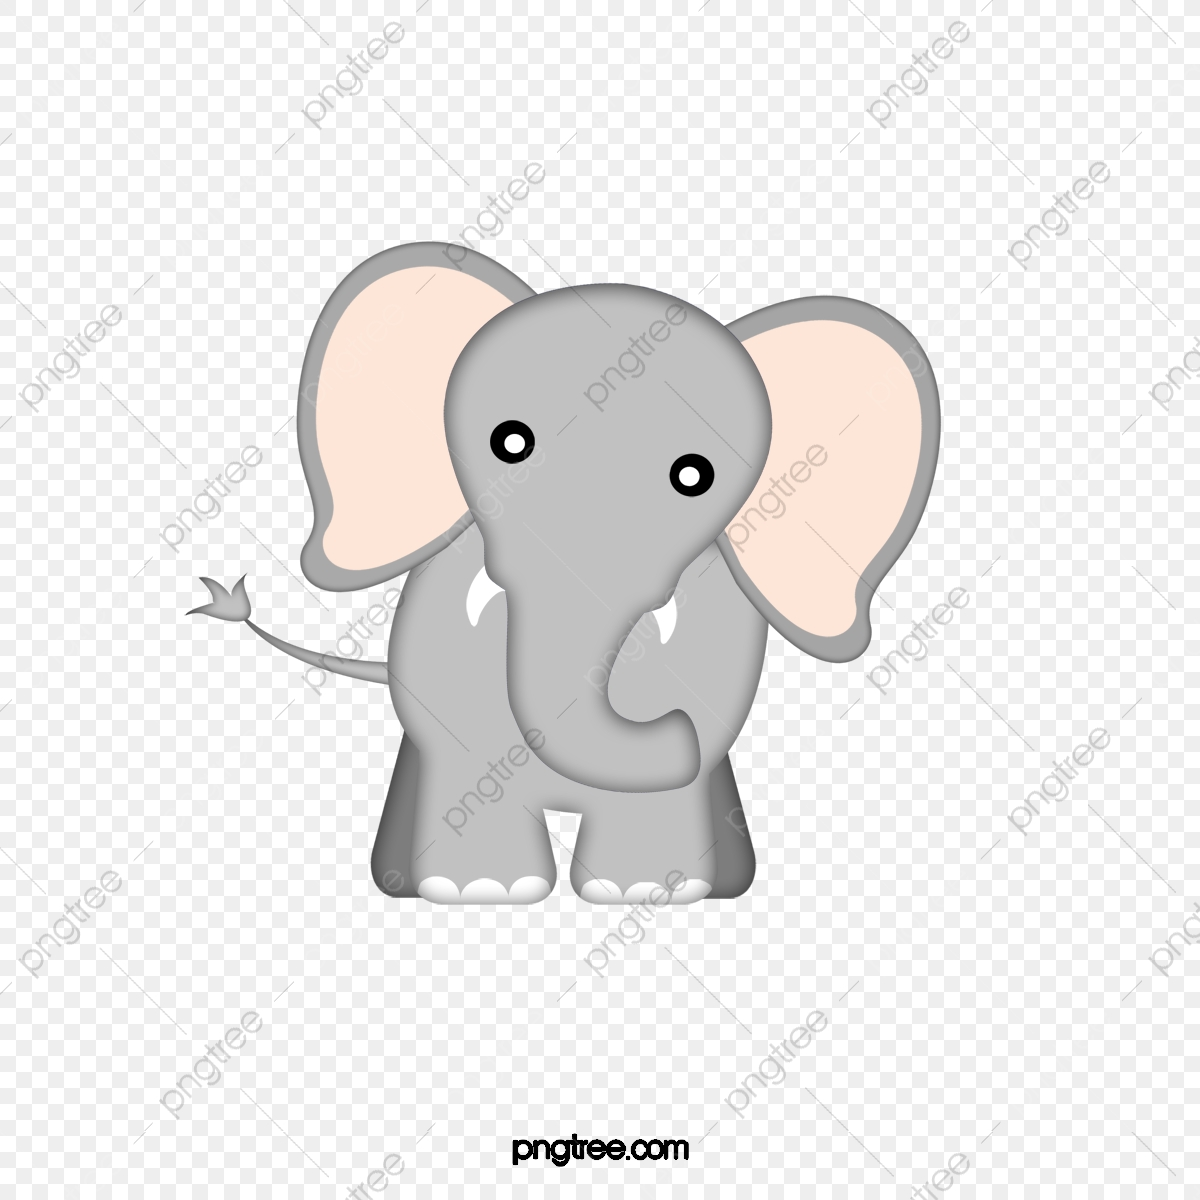 Cute Elephant Elephant Clipart Cute Clipart Meng Stay Elephant Png Transparent Clipart Image And Psd File For Free Download 16,000+ vectors, stock photos & psd files. https pngtree com freepng cute elephant 2667625 html